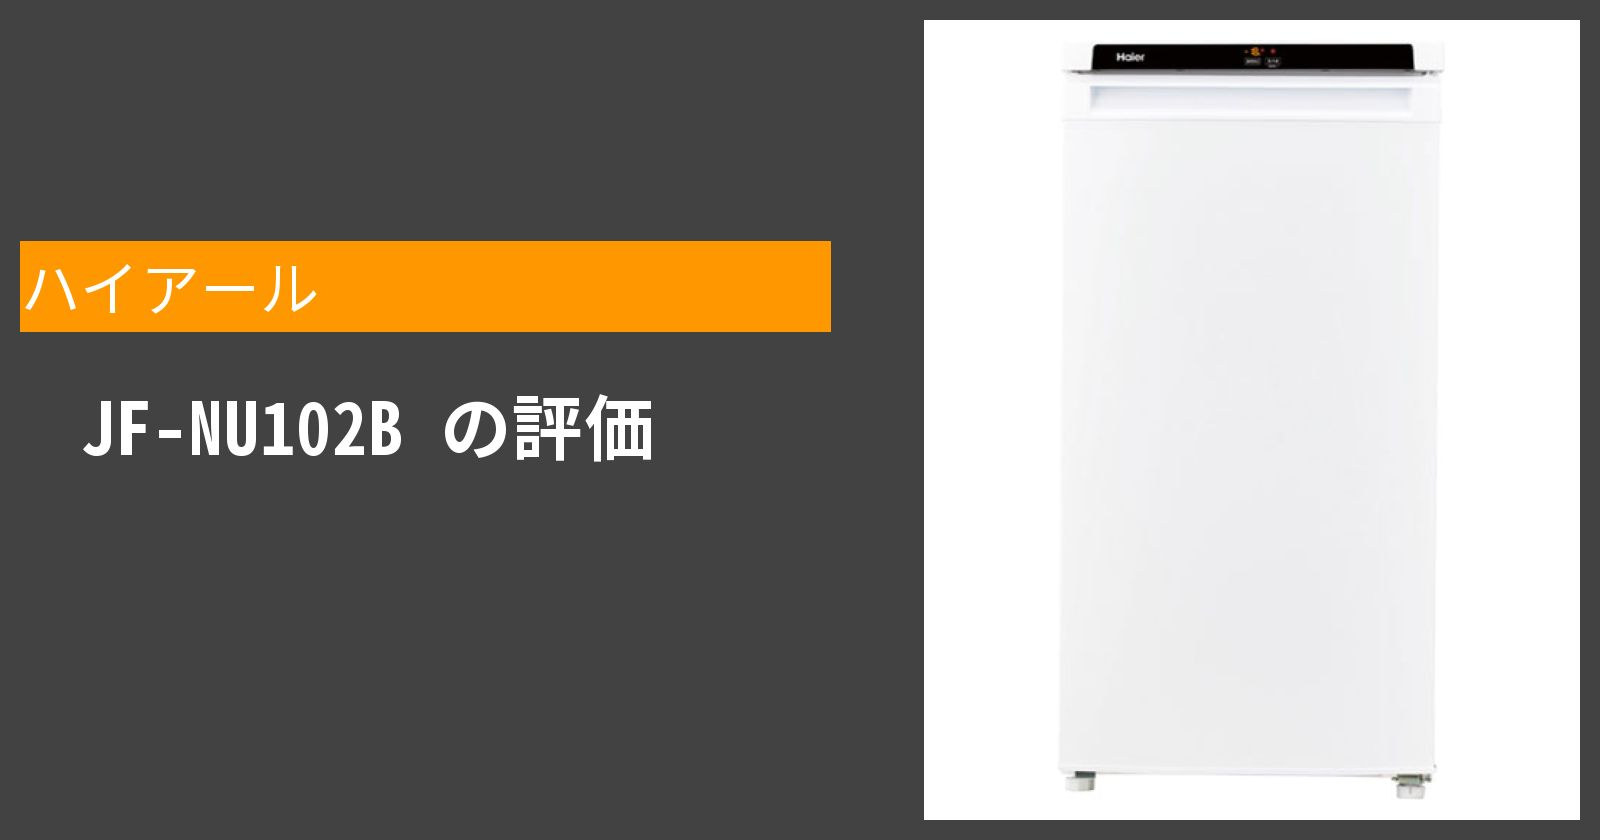 JF-NU102Bを徹底評価